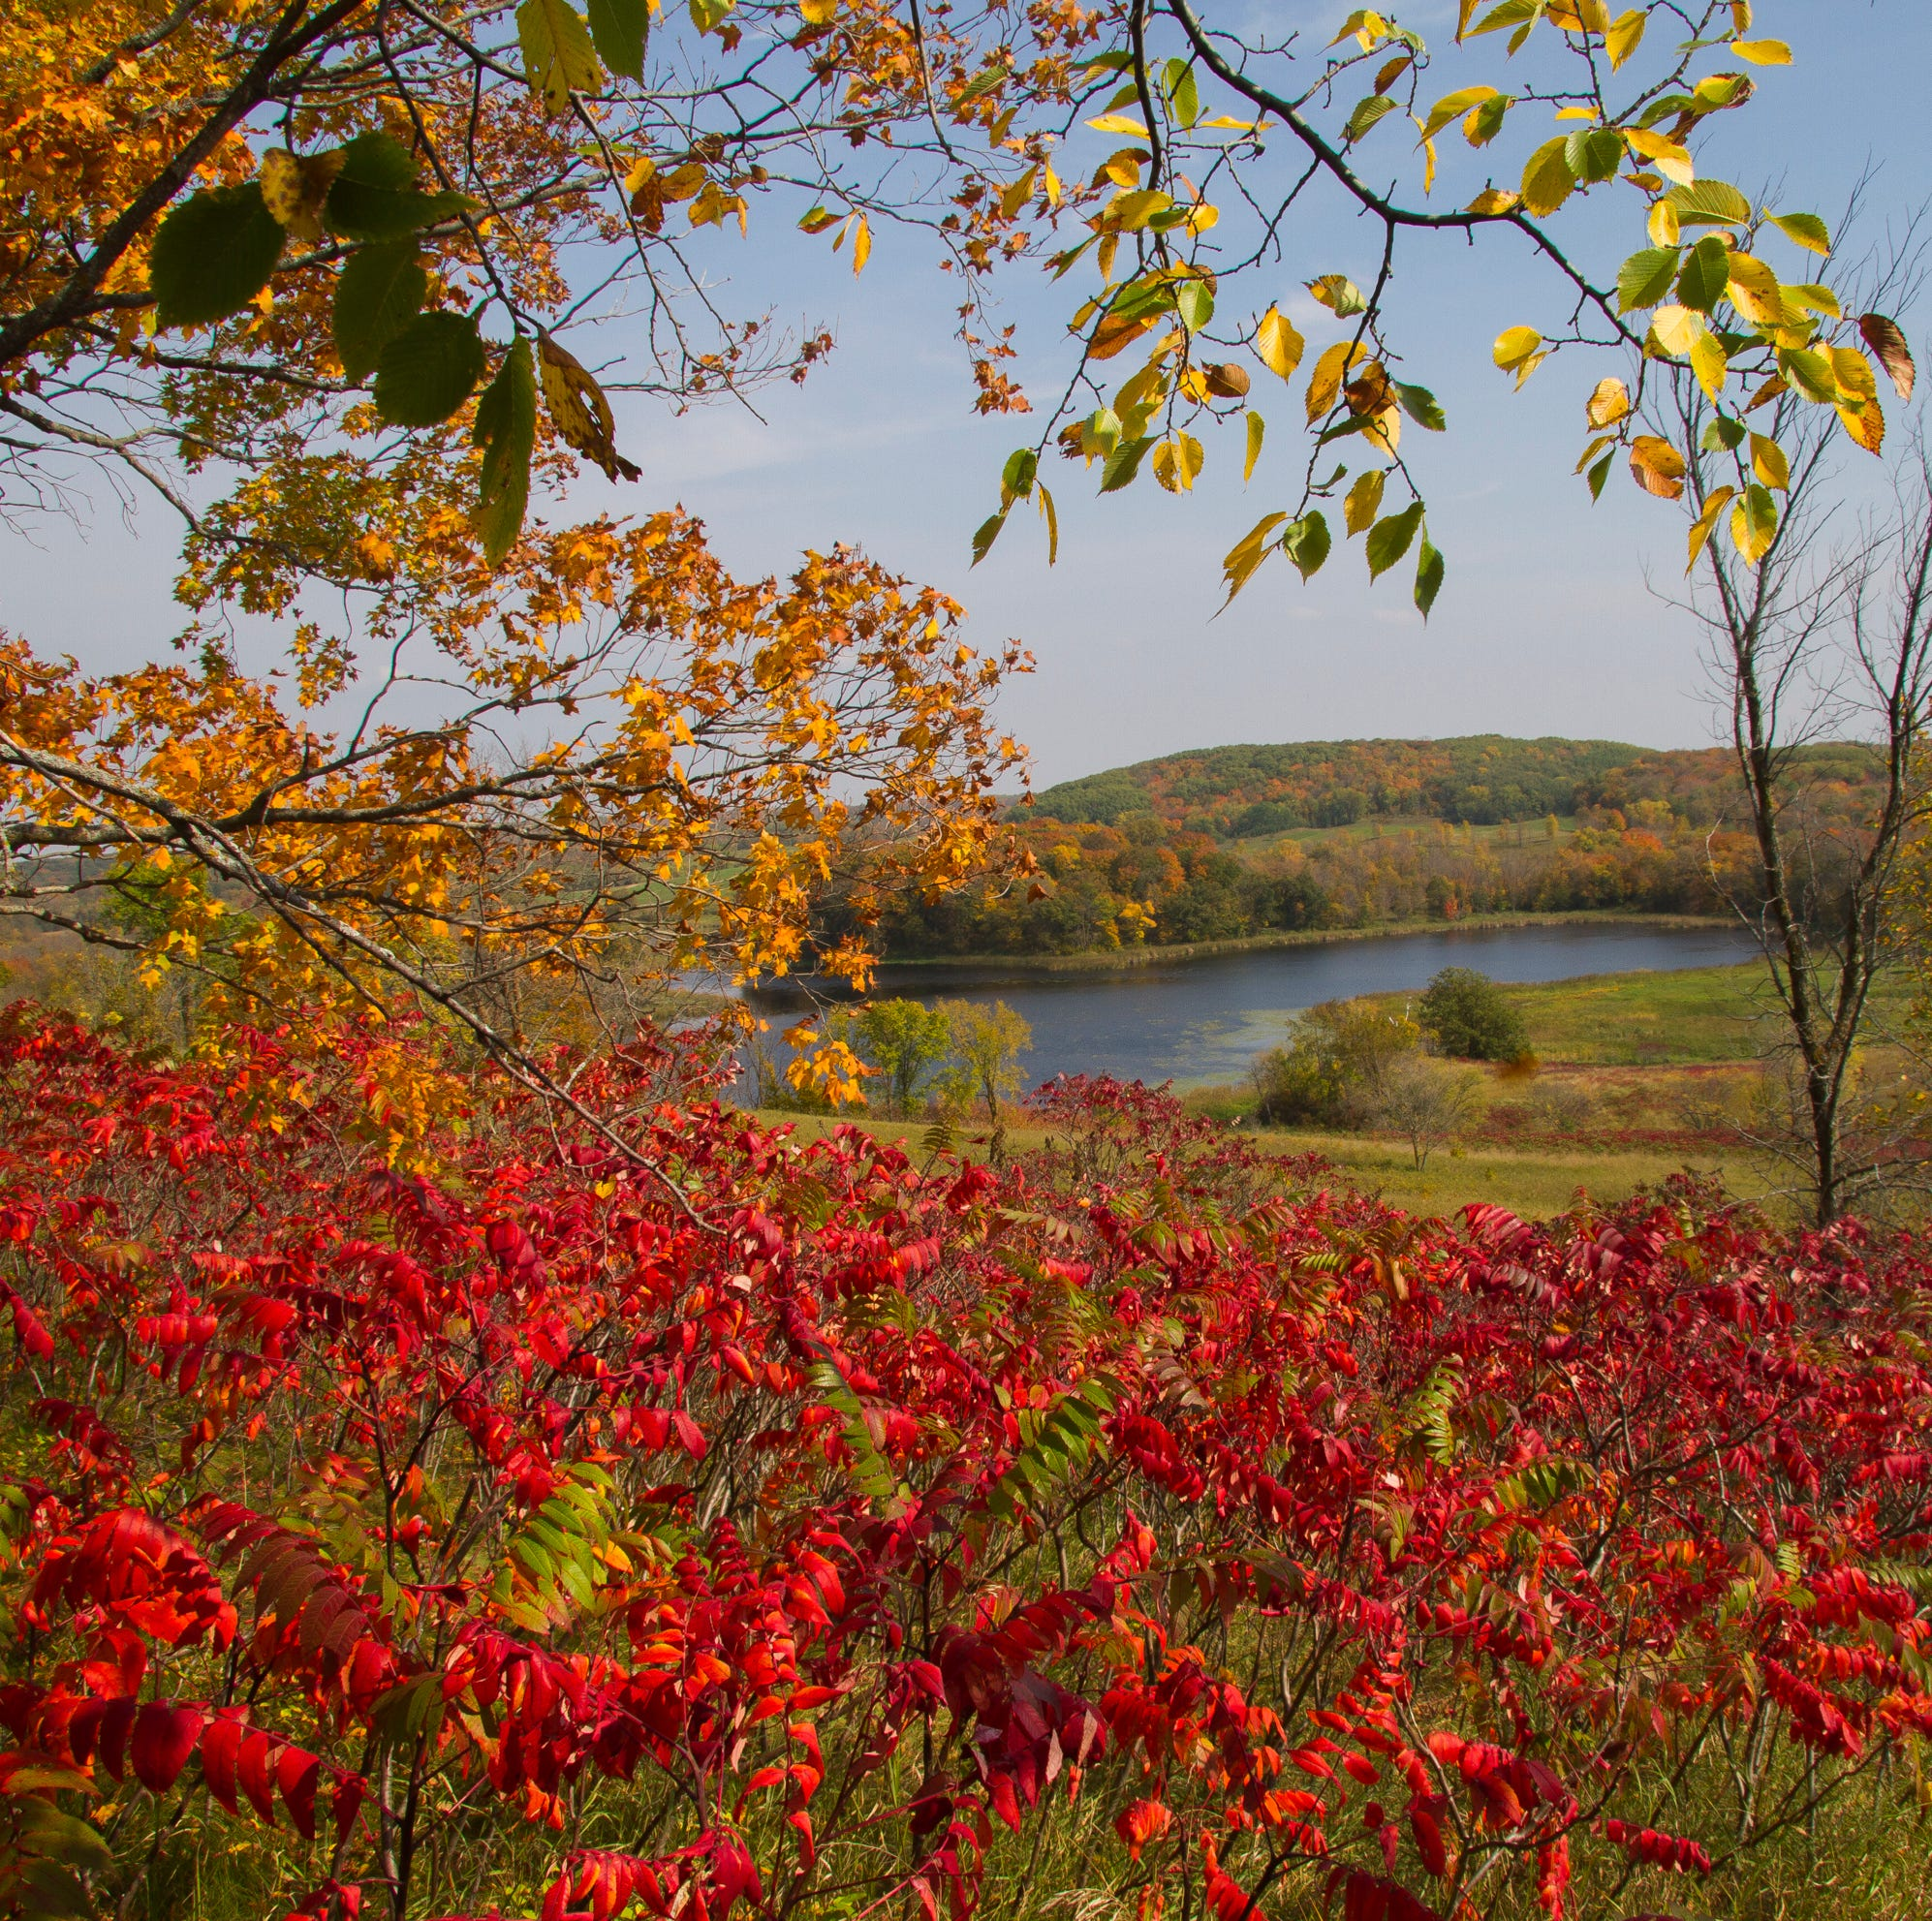 Ravenous on a Rainbow Route? Where to eat and drink on your fall foliage tour